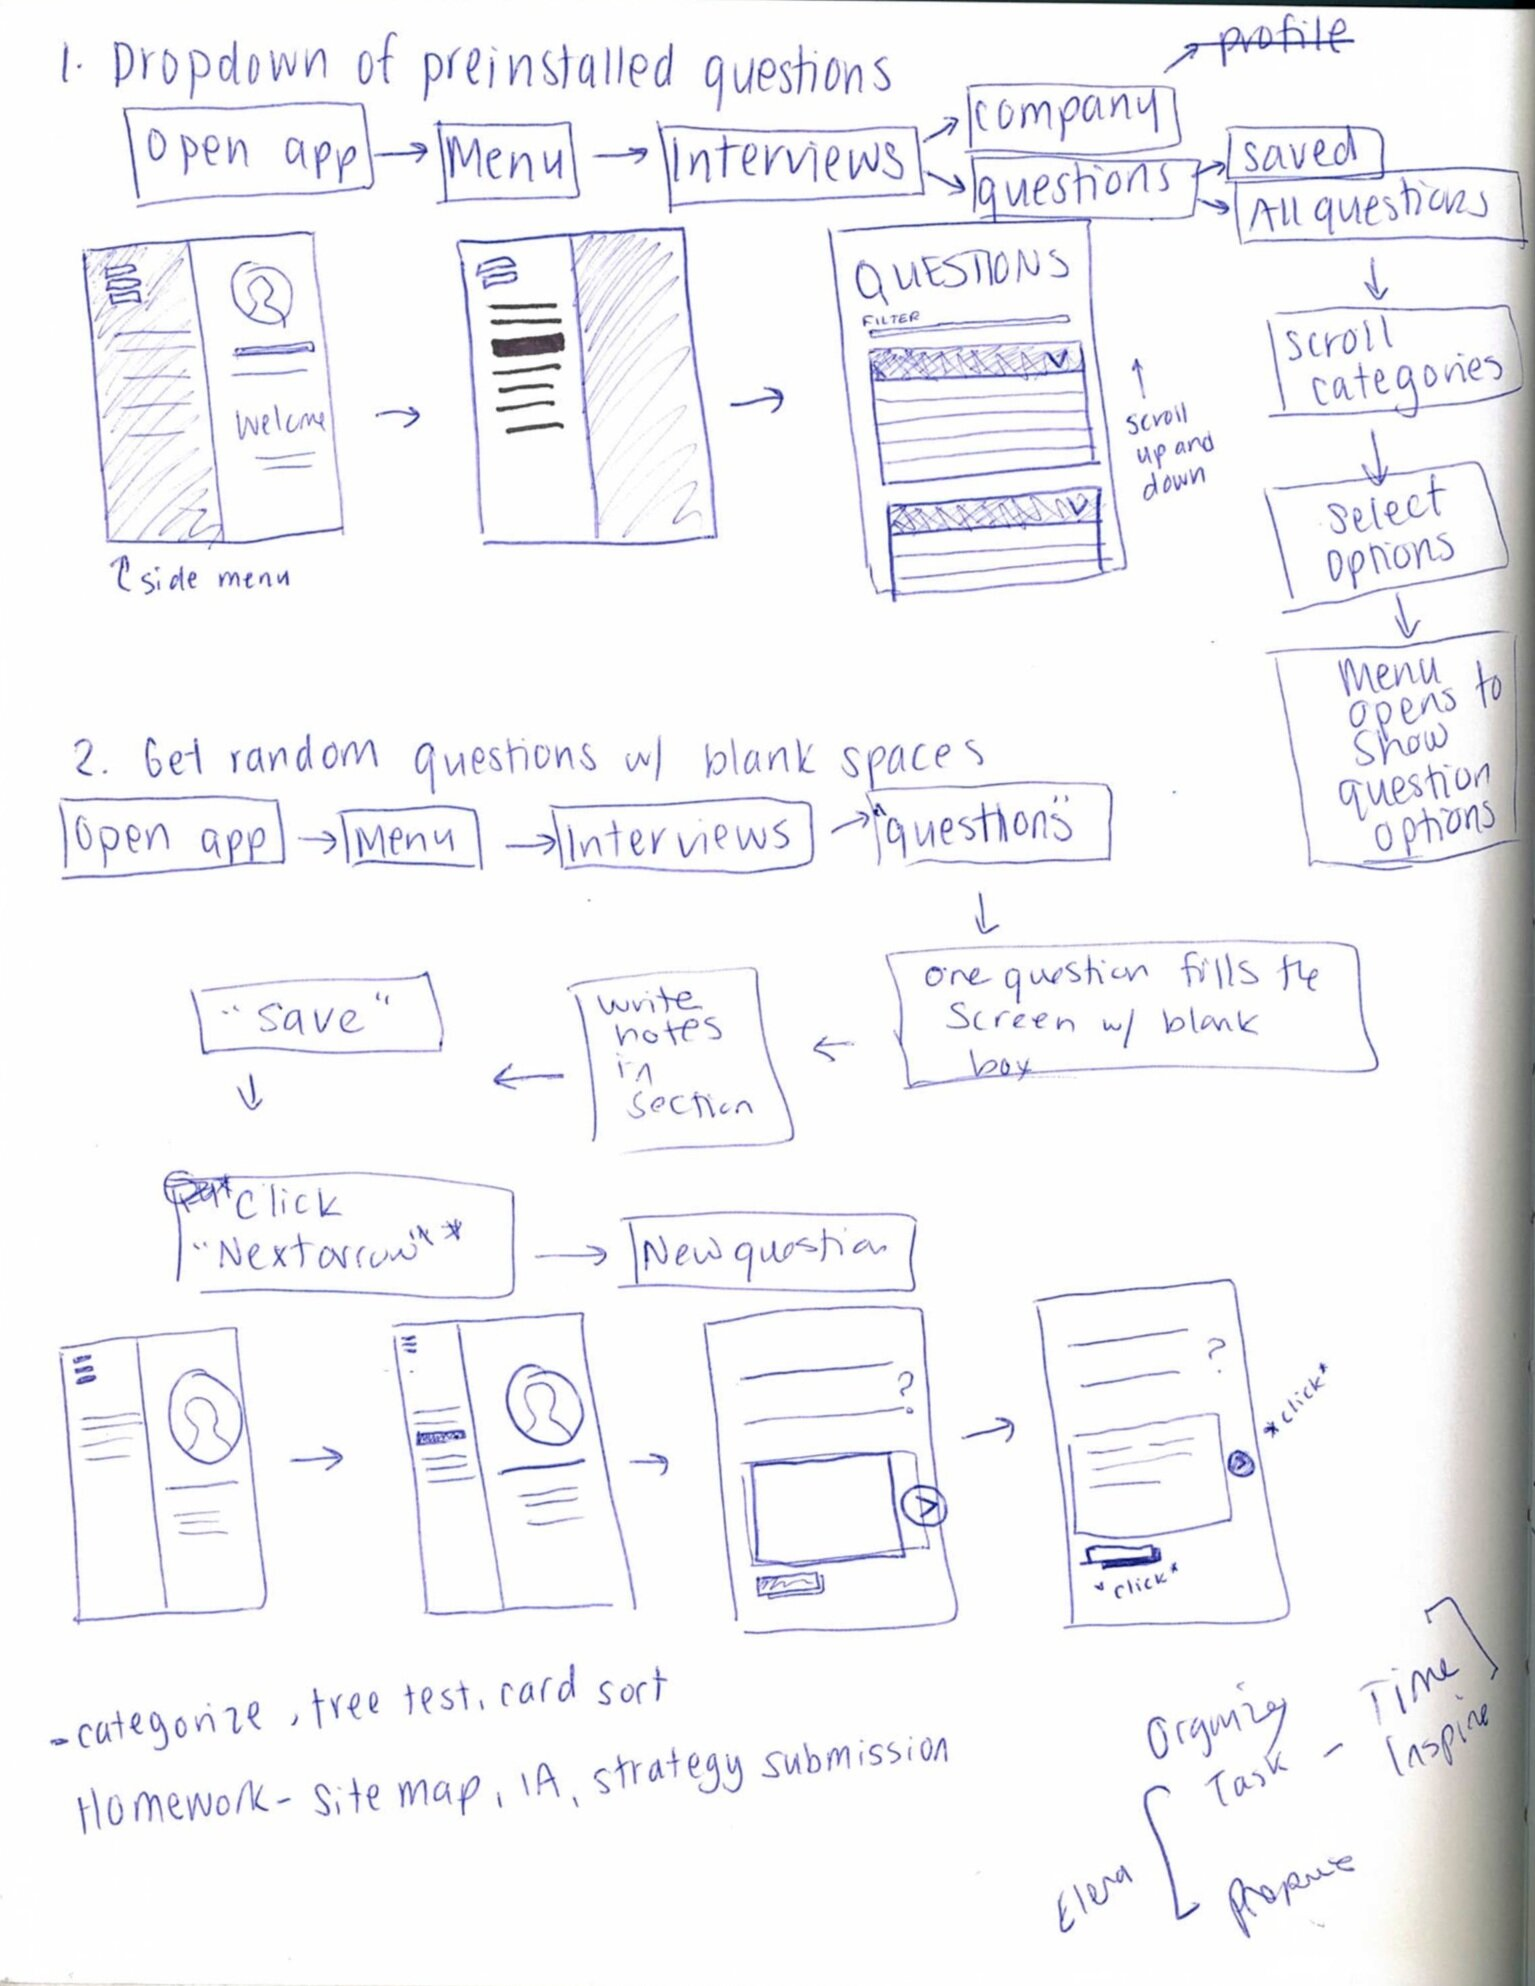 Potential workflow for one of the sprint ideas for an interviewing functionality